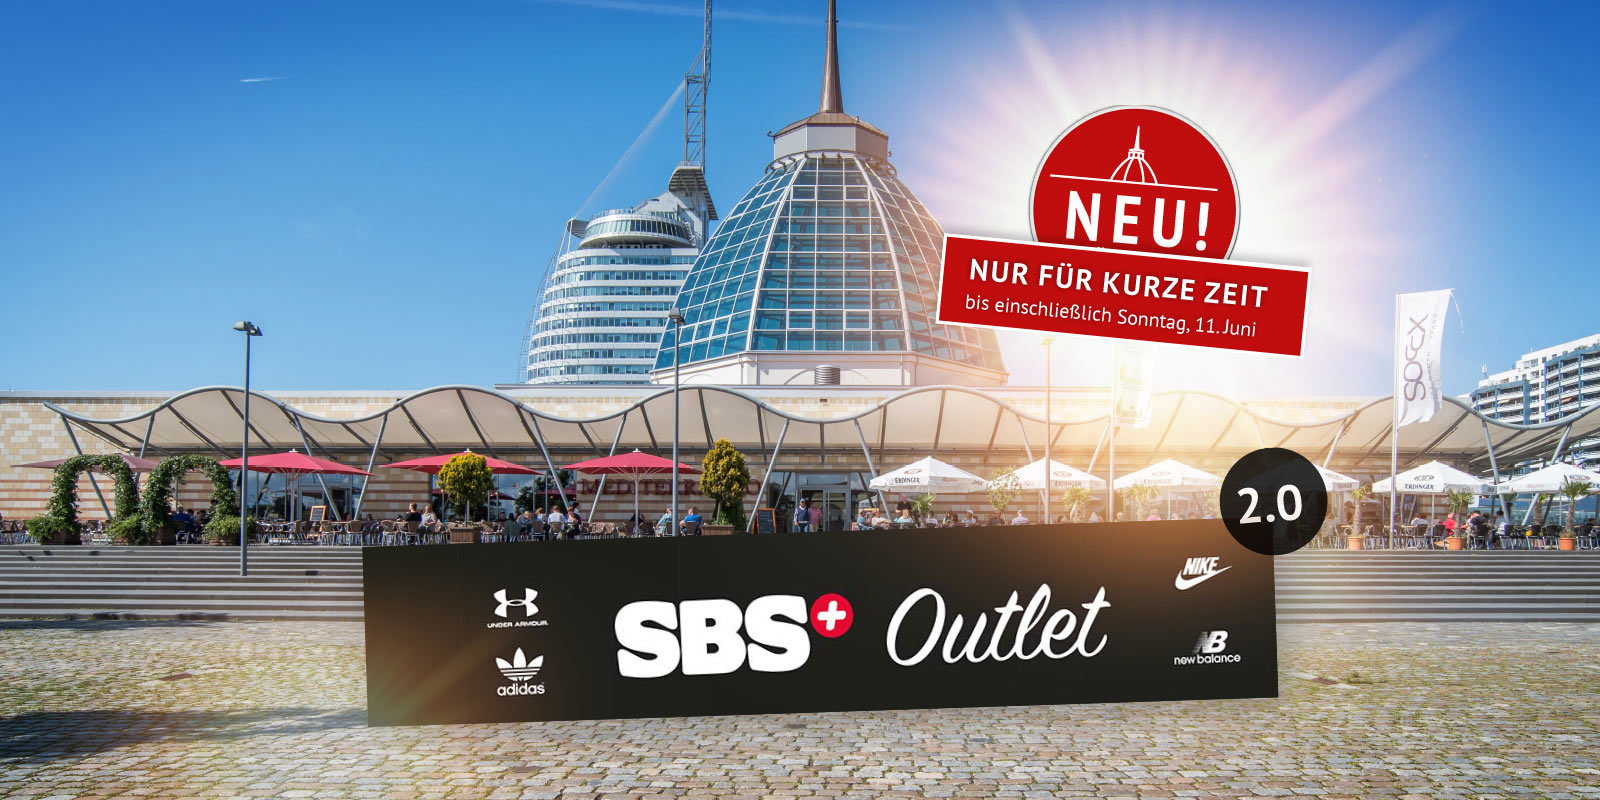 sbs outlet 2 0 sportswear outlet das mediterraneo. Black Bedroom Furniture Sets. Home Design Ideas